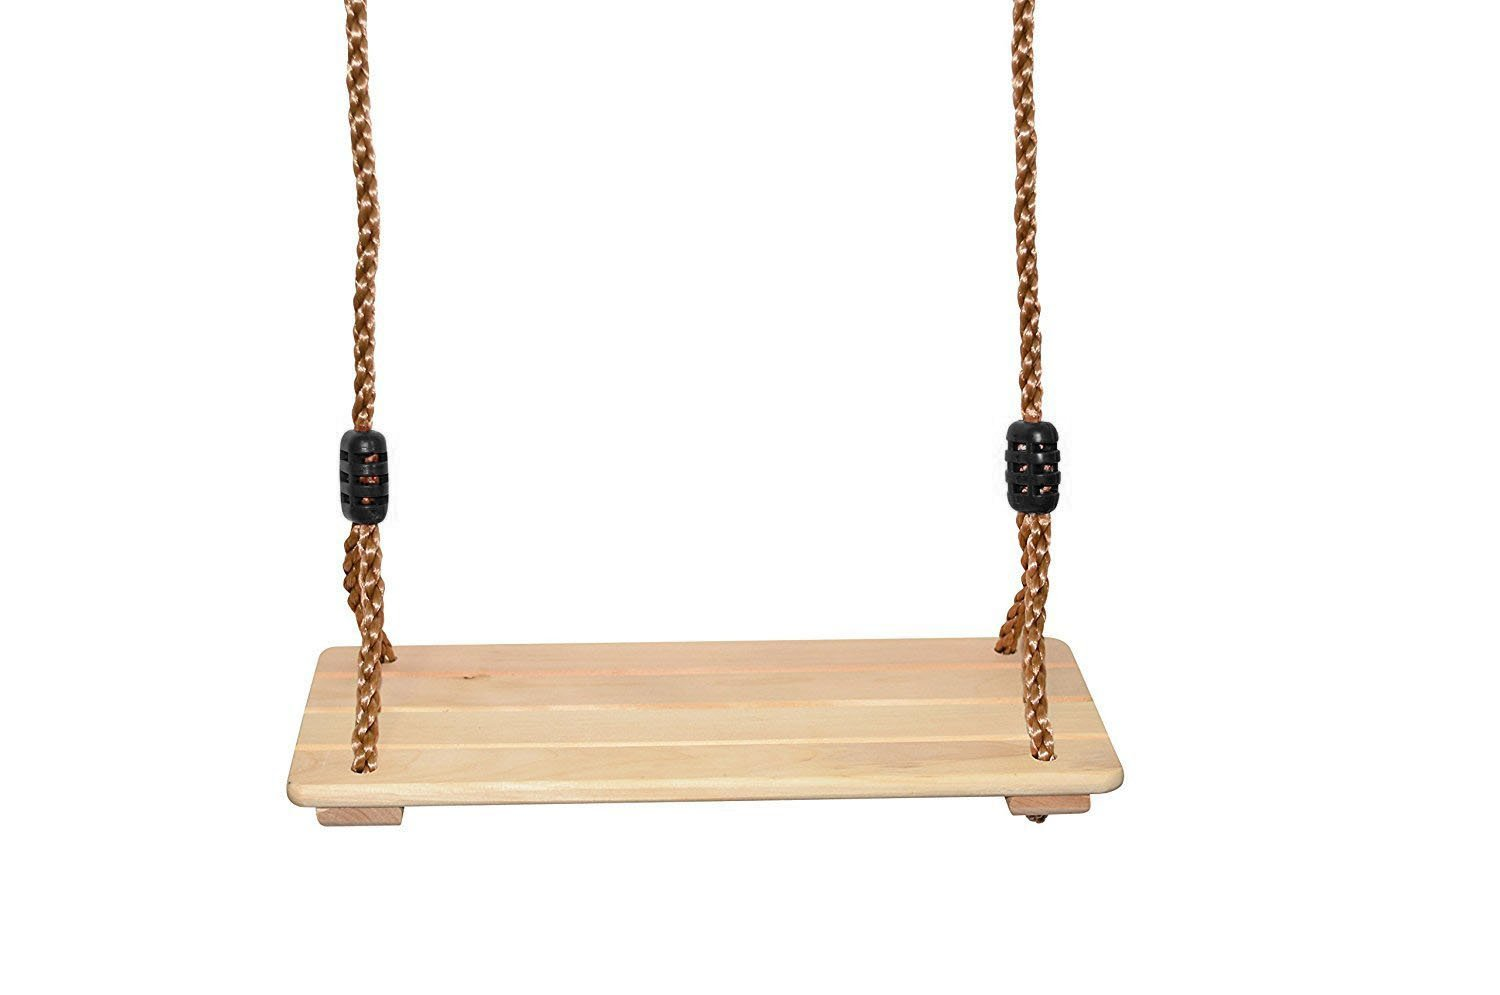 Ruby's Creations Wooden Tree Swing for Kids: Hang This Adjustable Childs Wood Swing from Your Favorite Tree Outdoors Or Hang It from The Ceiling in Your Children's Room Indoors